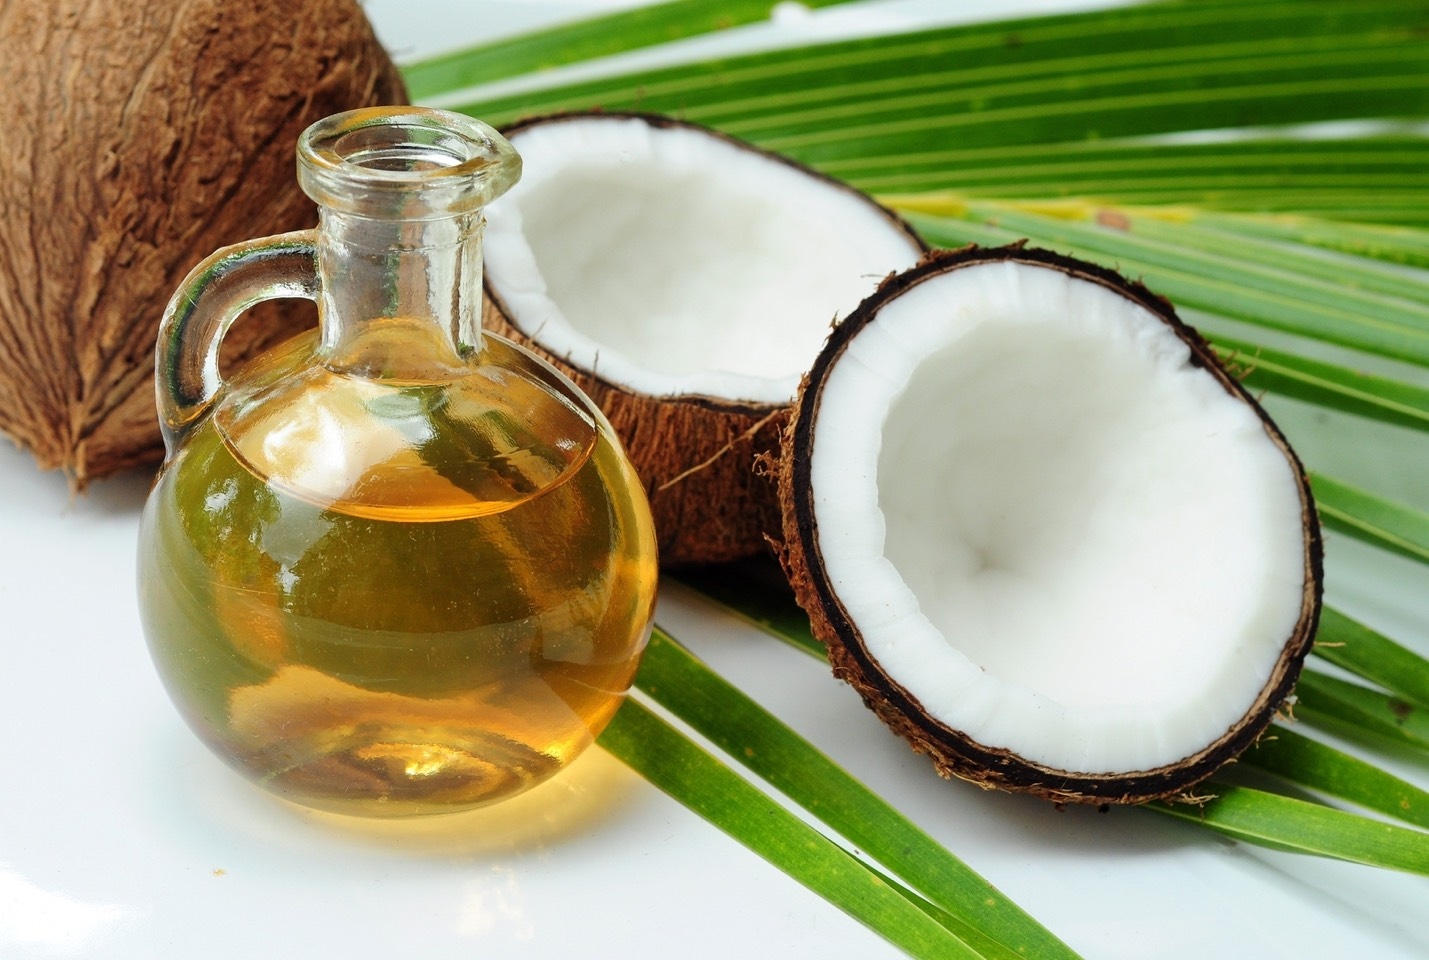 4) Coconut oil is an excellent source that will restore oils that may have been the cause of your dark circles.